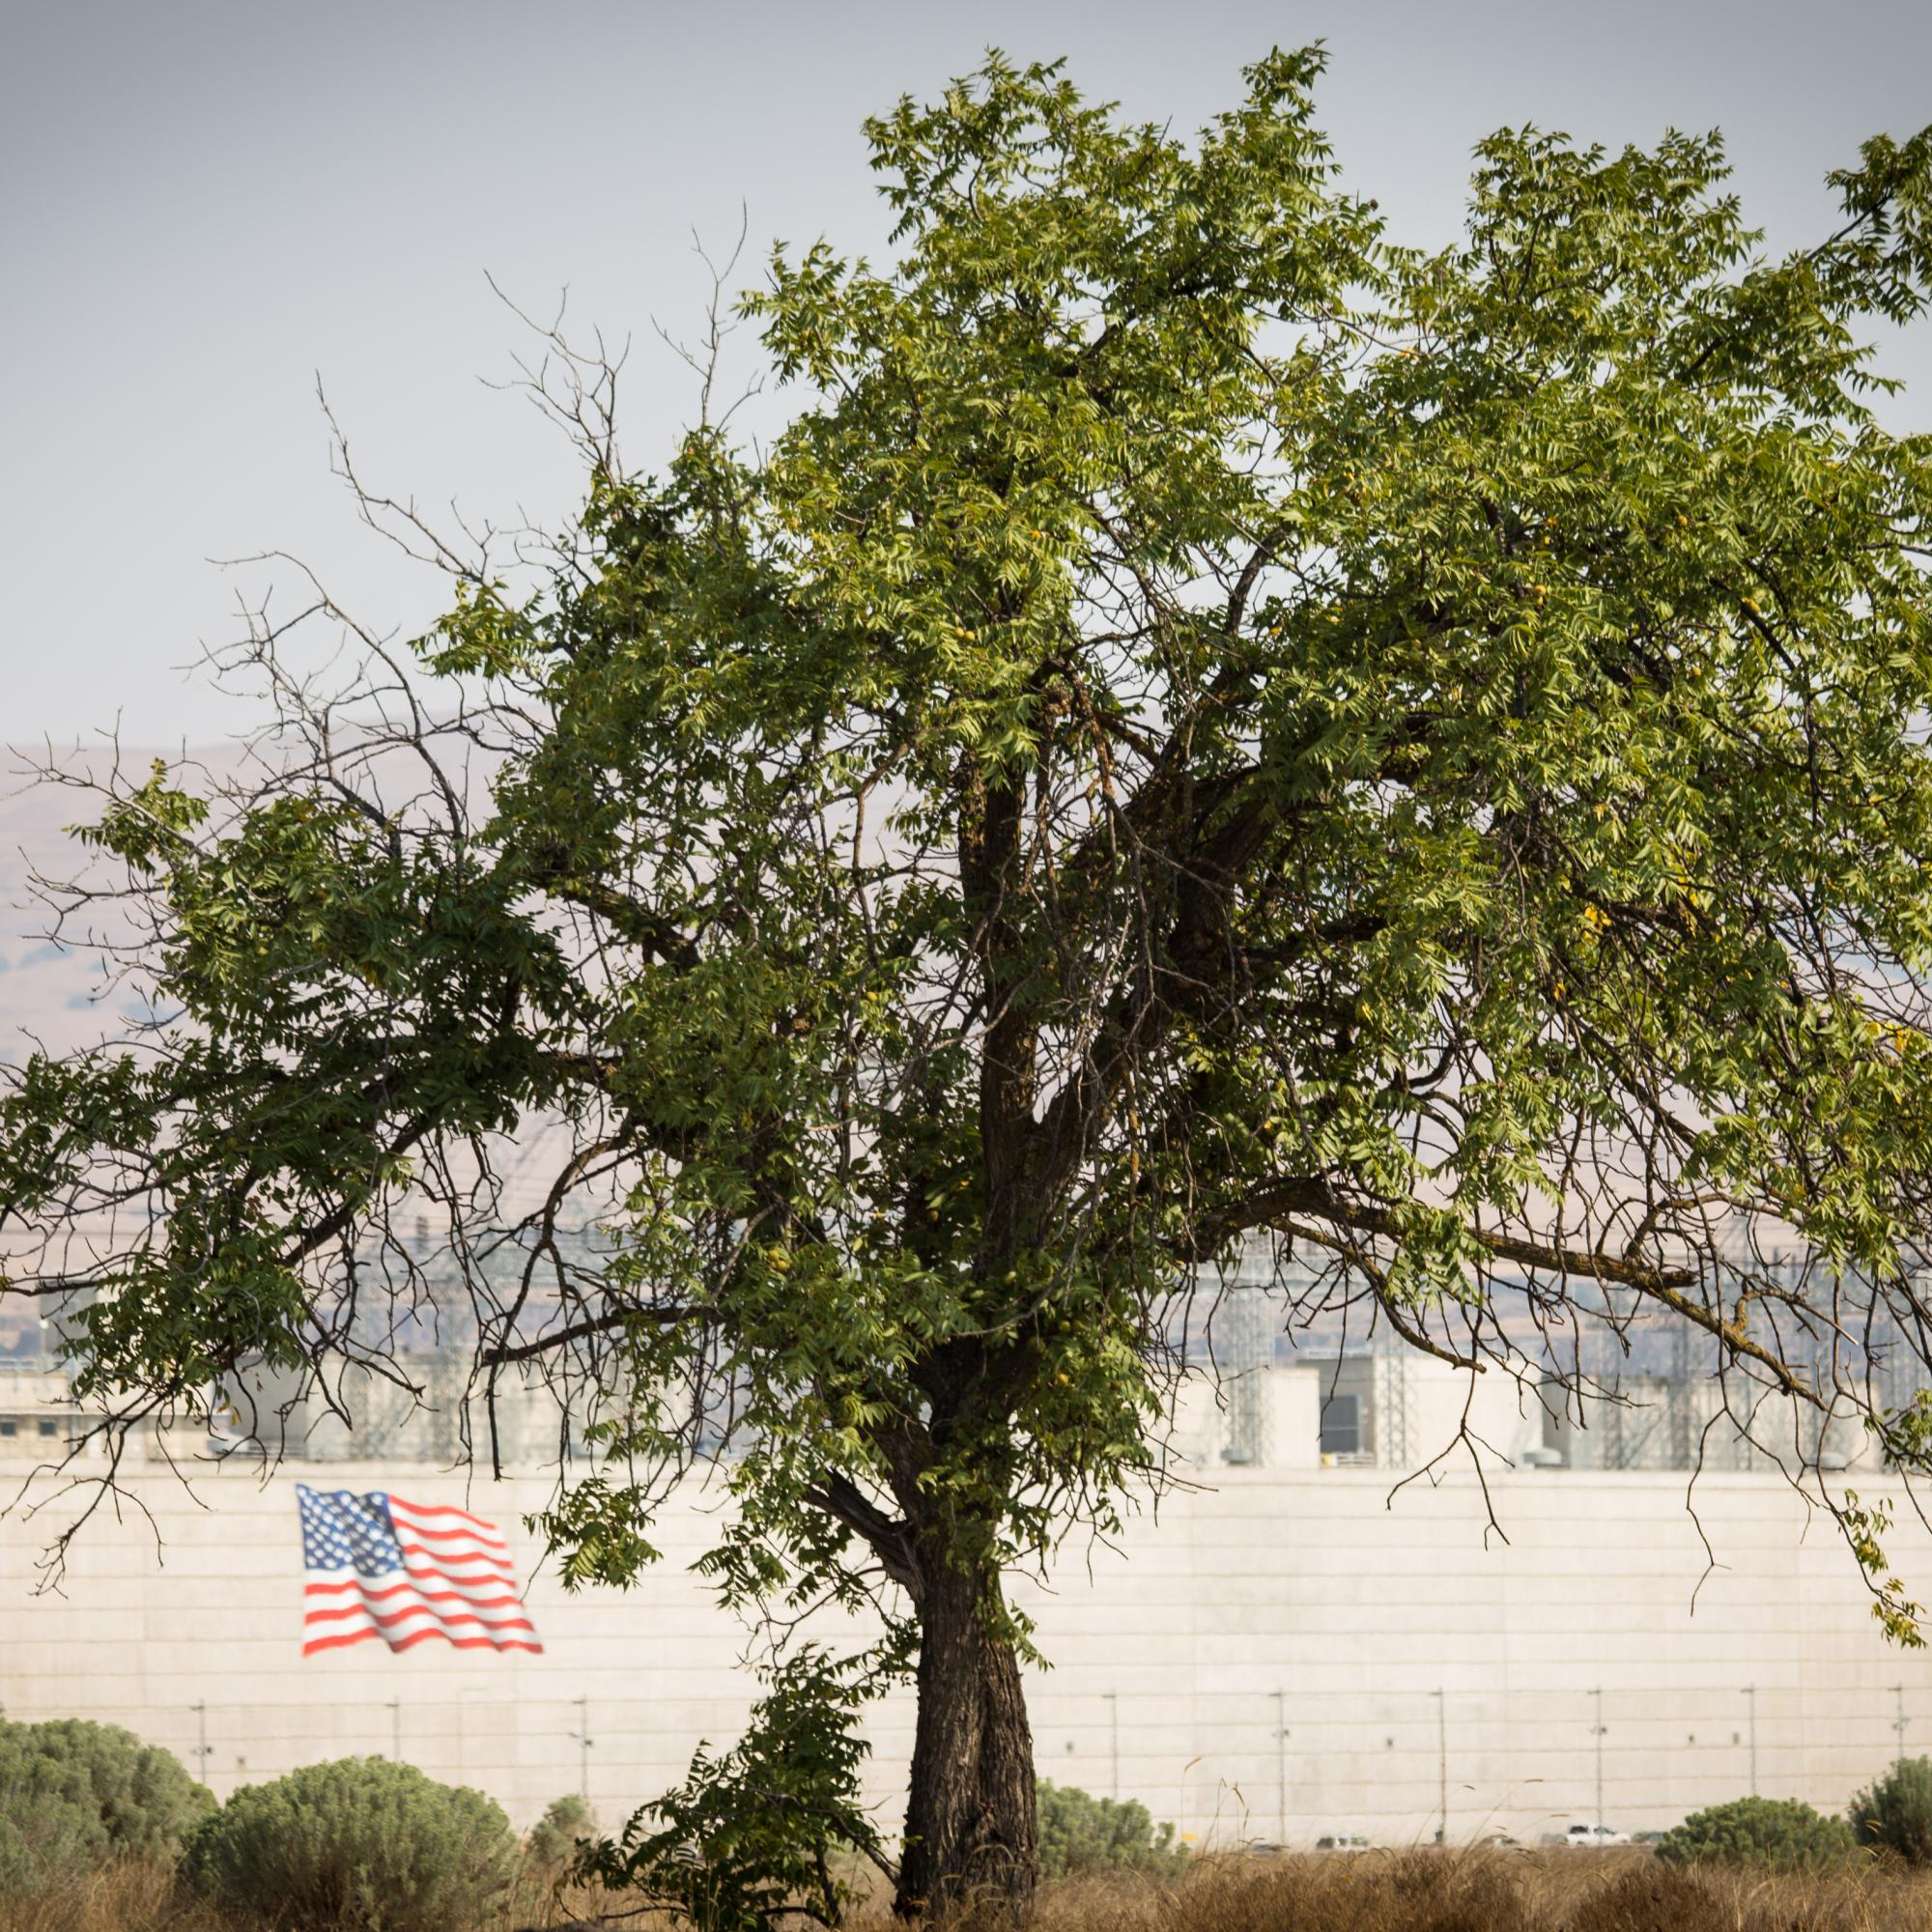 A Flag and a Tree